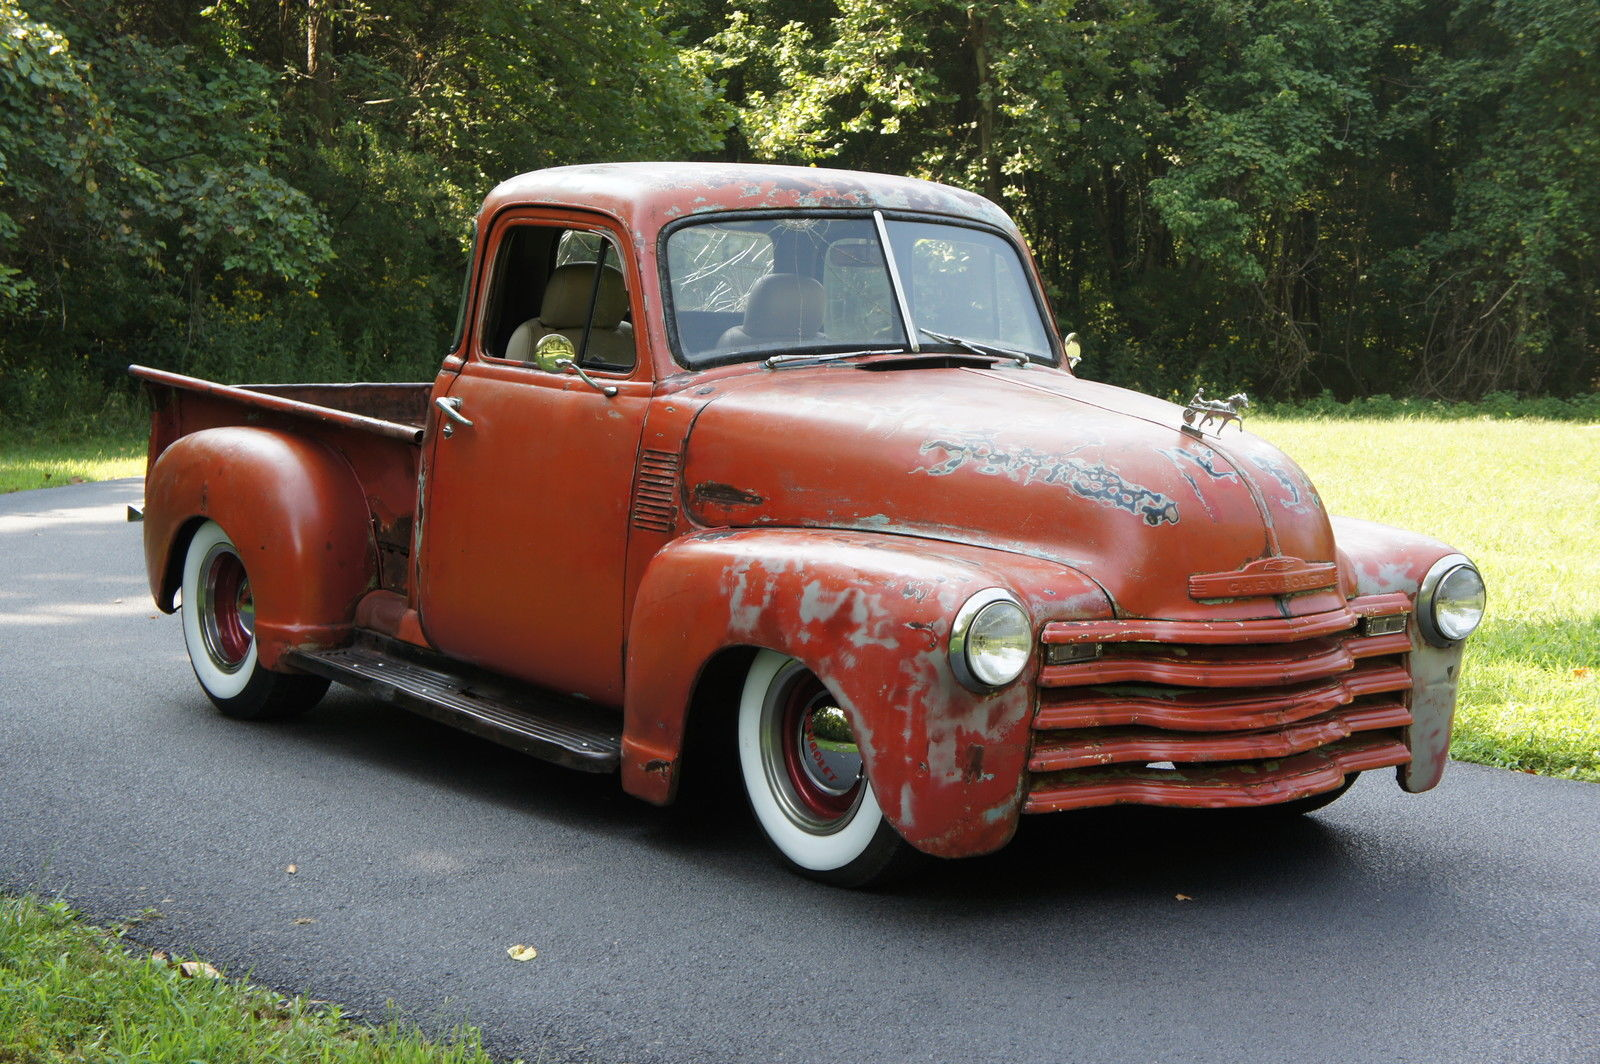 1951 Chevy 3100 5 Window Shortbed Ratrod Original Patina Bad Ss Truck Classic Chevrolet Other Pickups 1951 For Sale